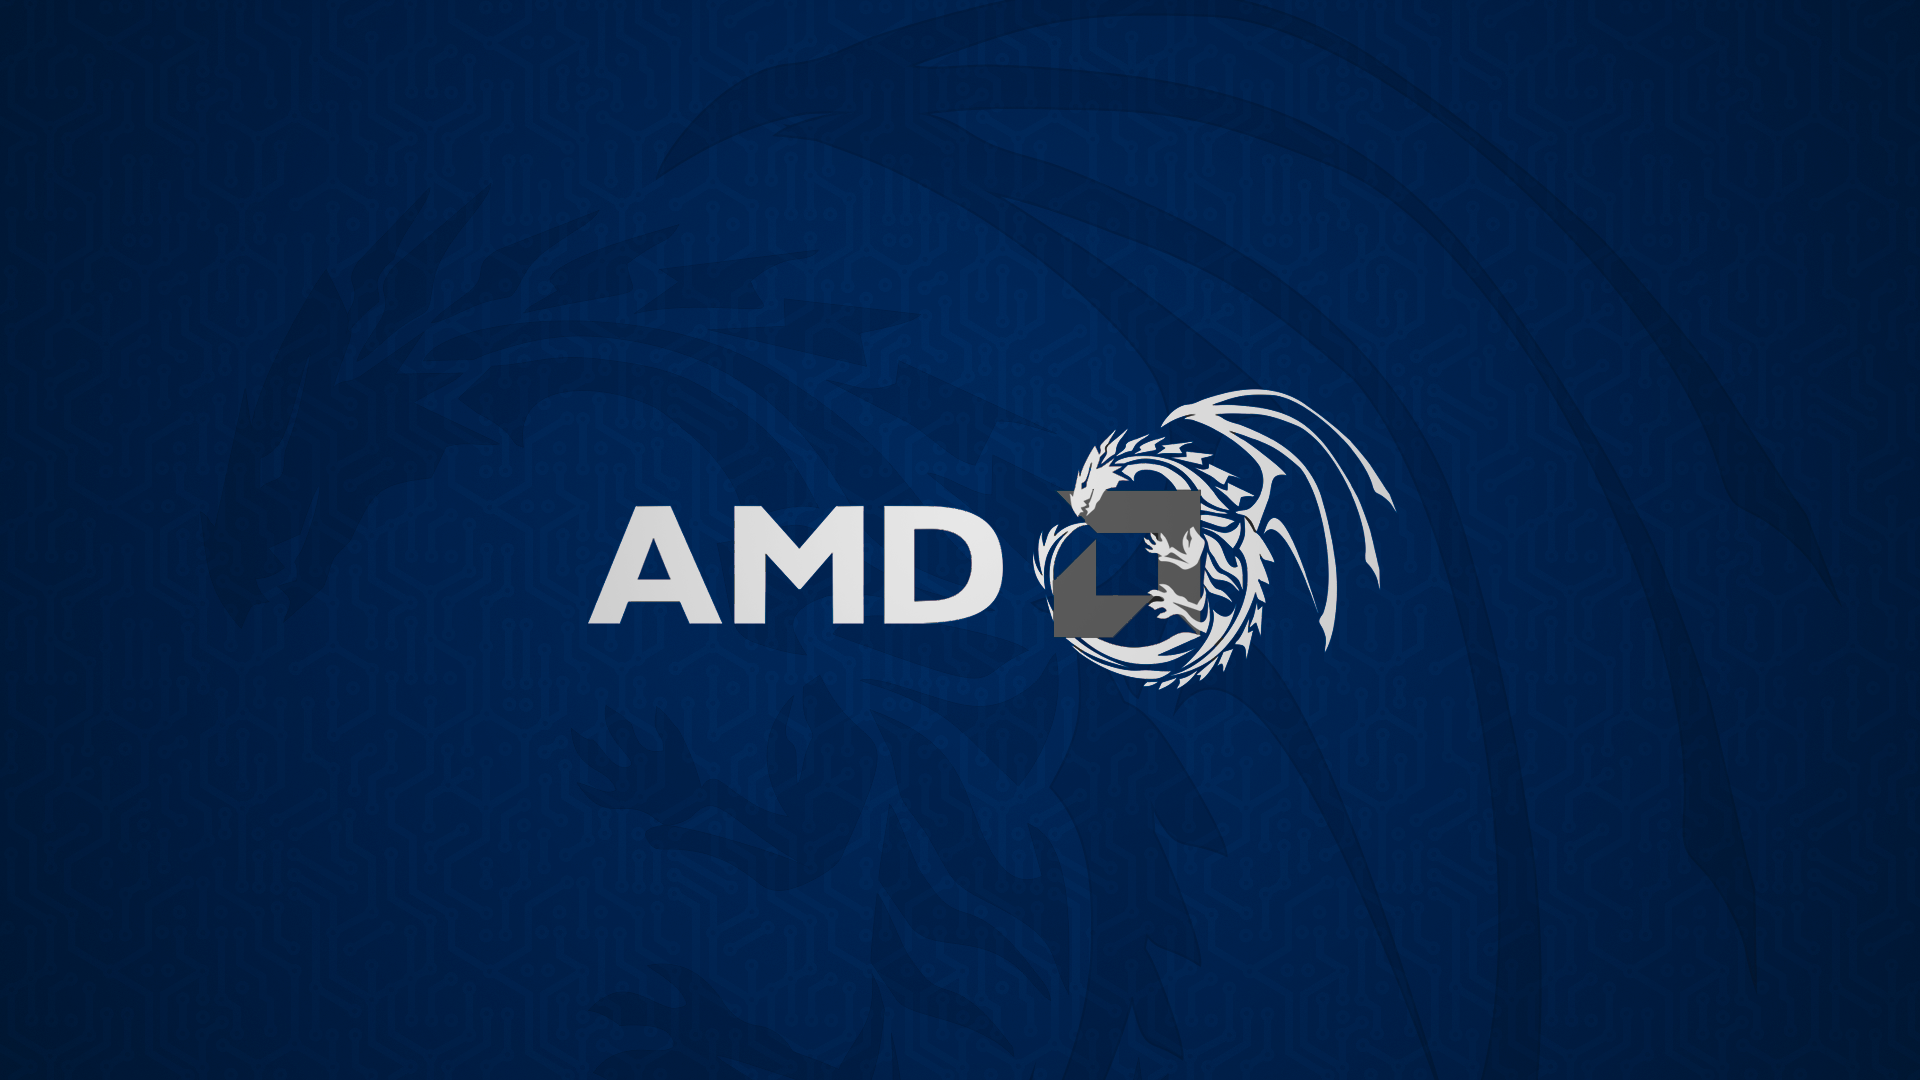 Amd Blue Dragon Hd Computer 4k Wallpapers Images Backgrounds Photos And Pictures